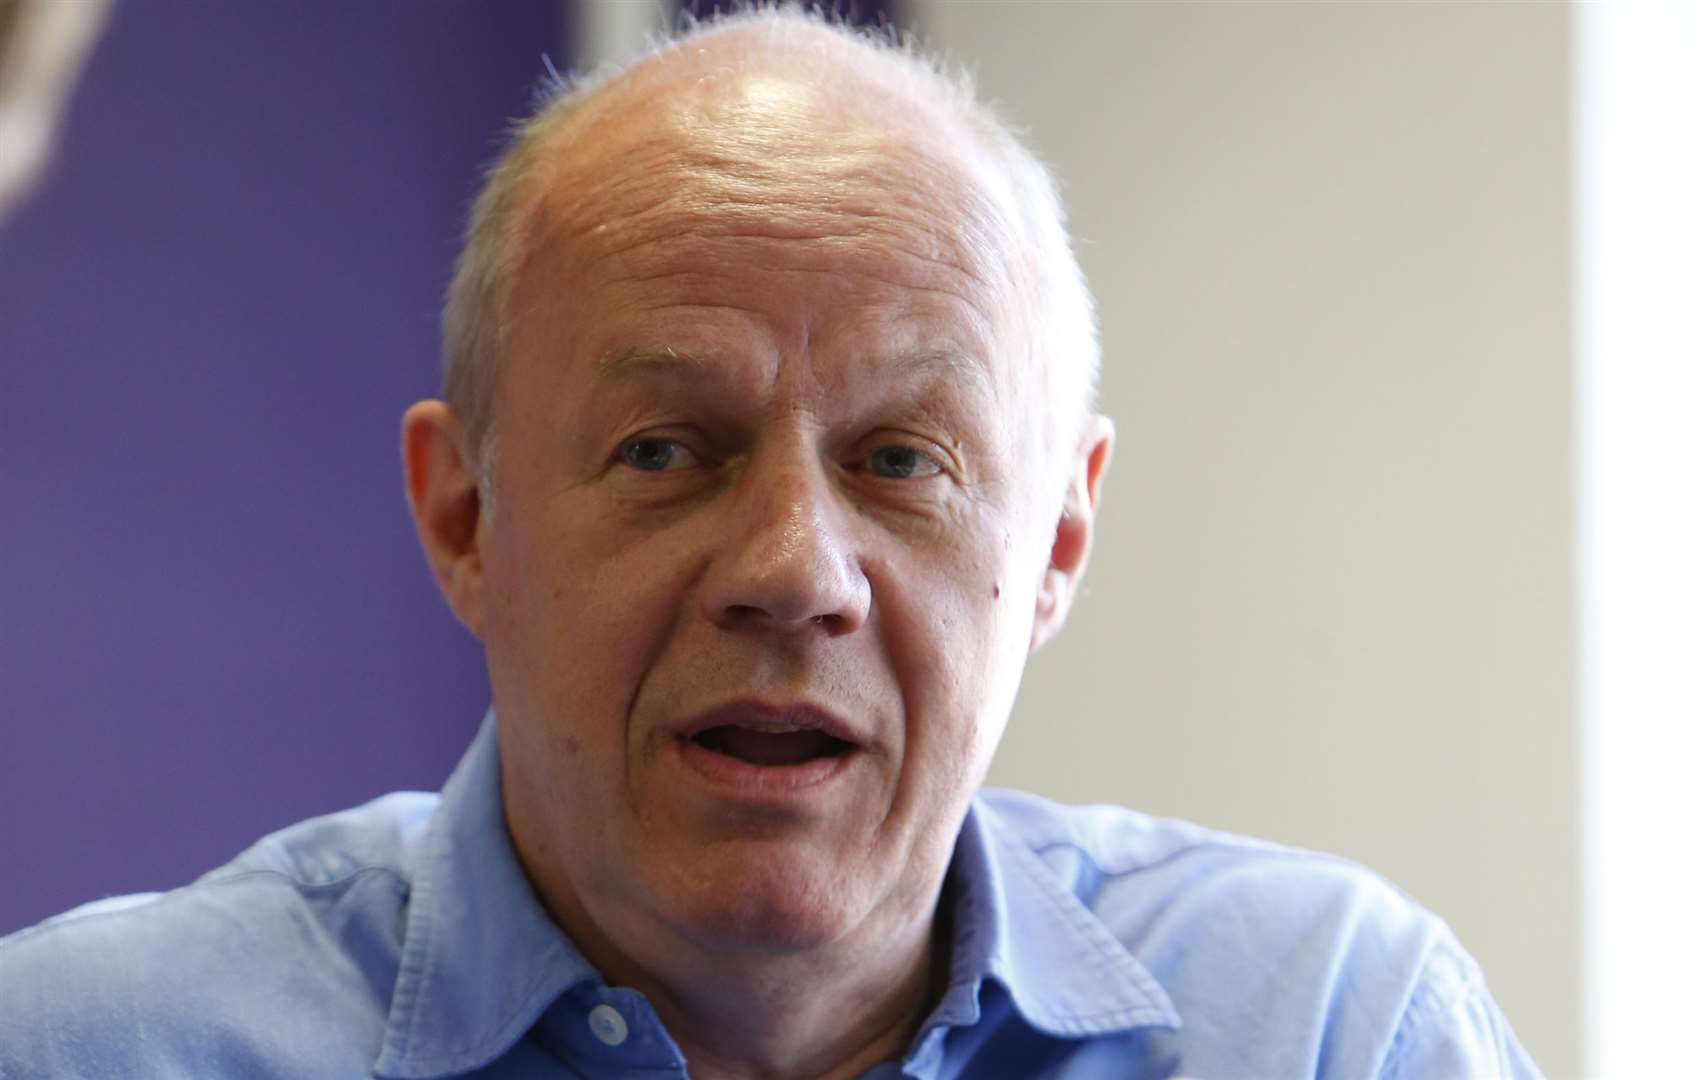 Damian Green thinks the idea of a super hospital is mad